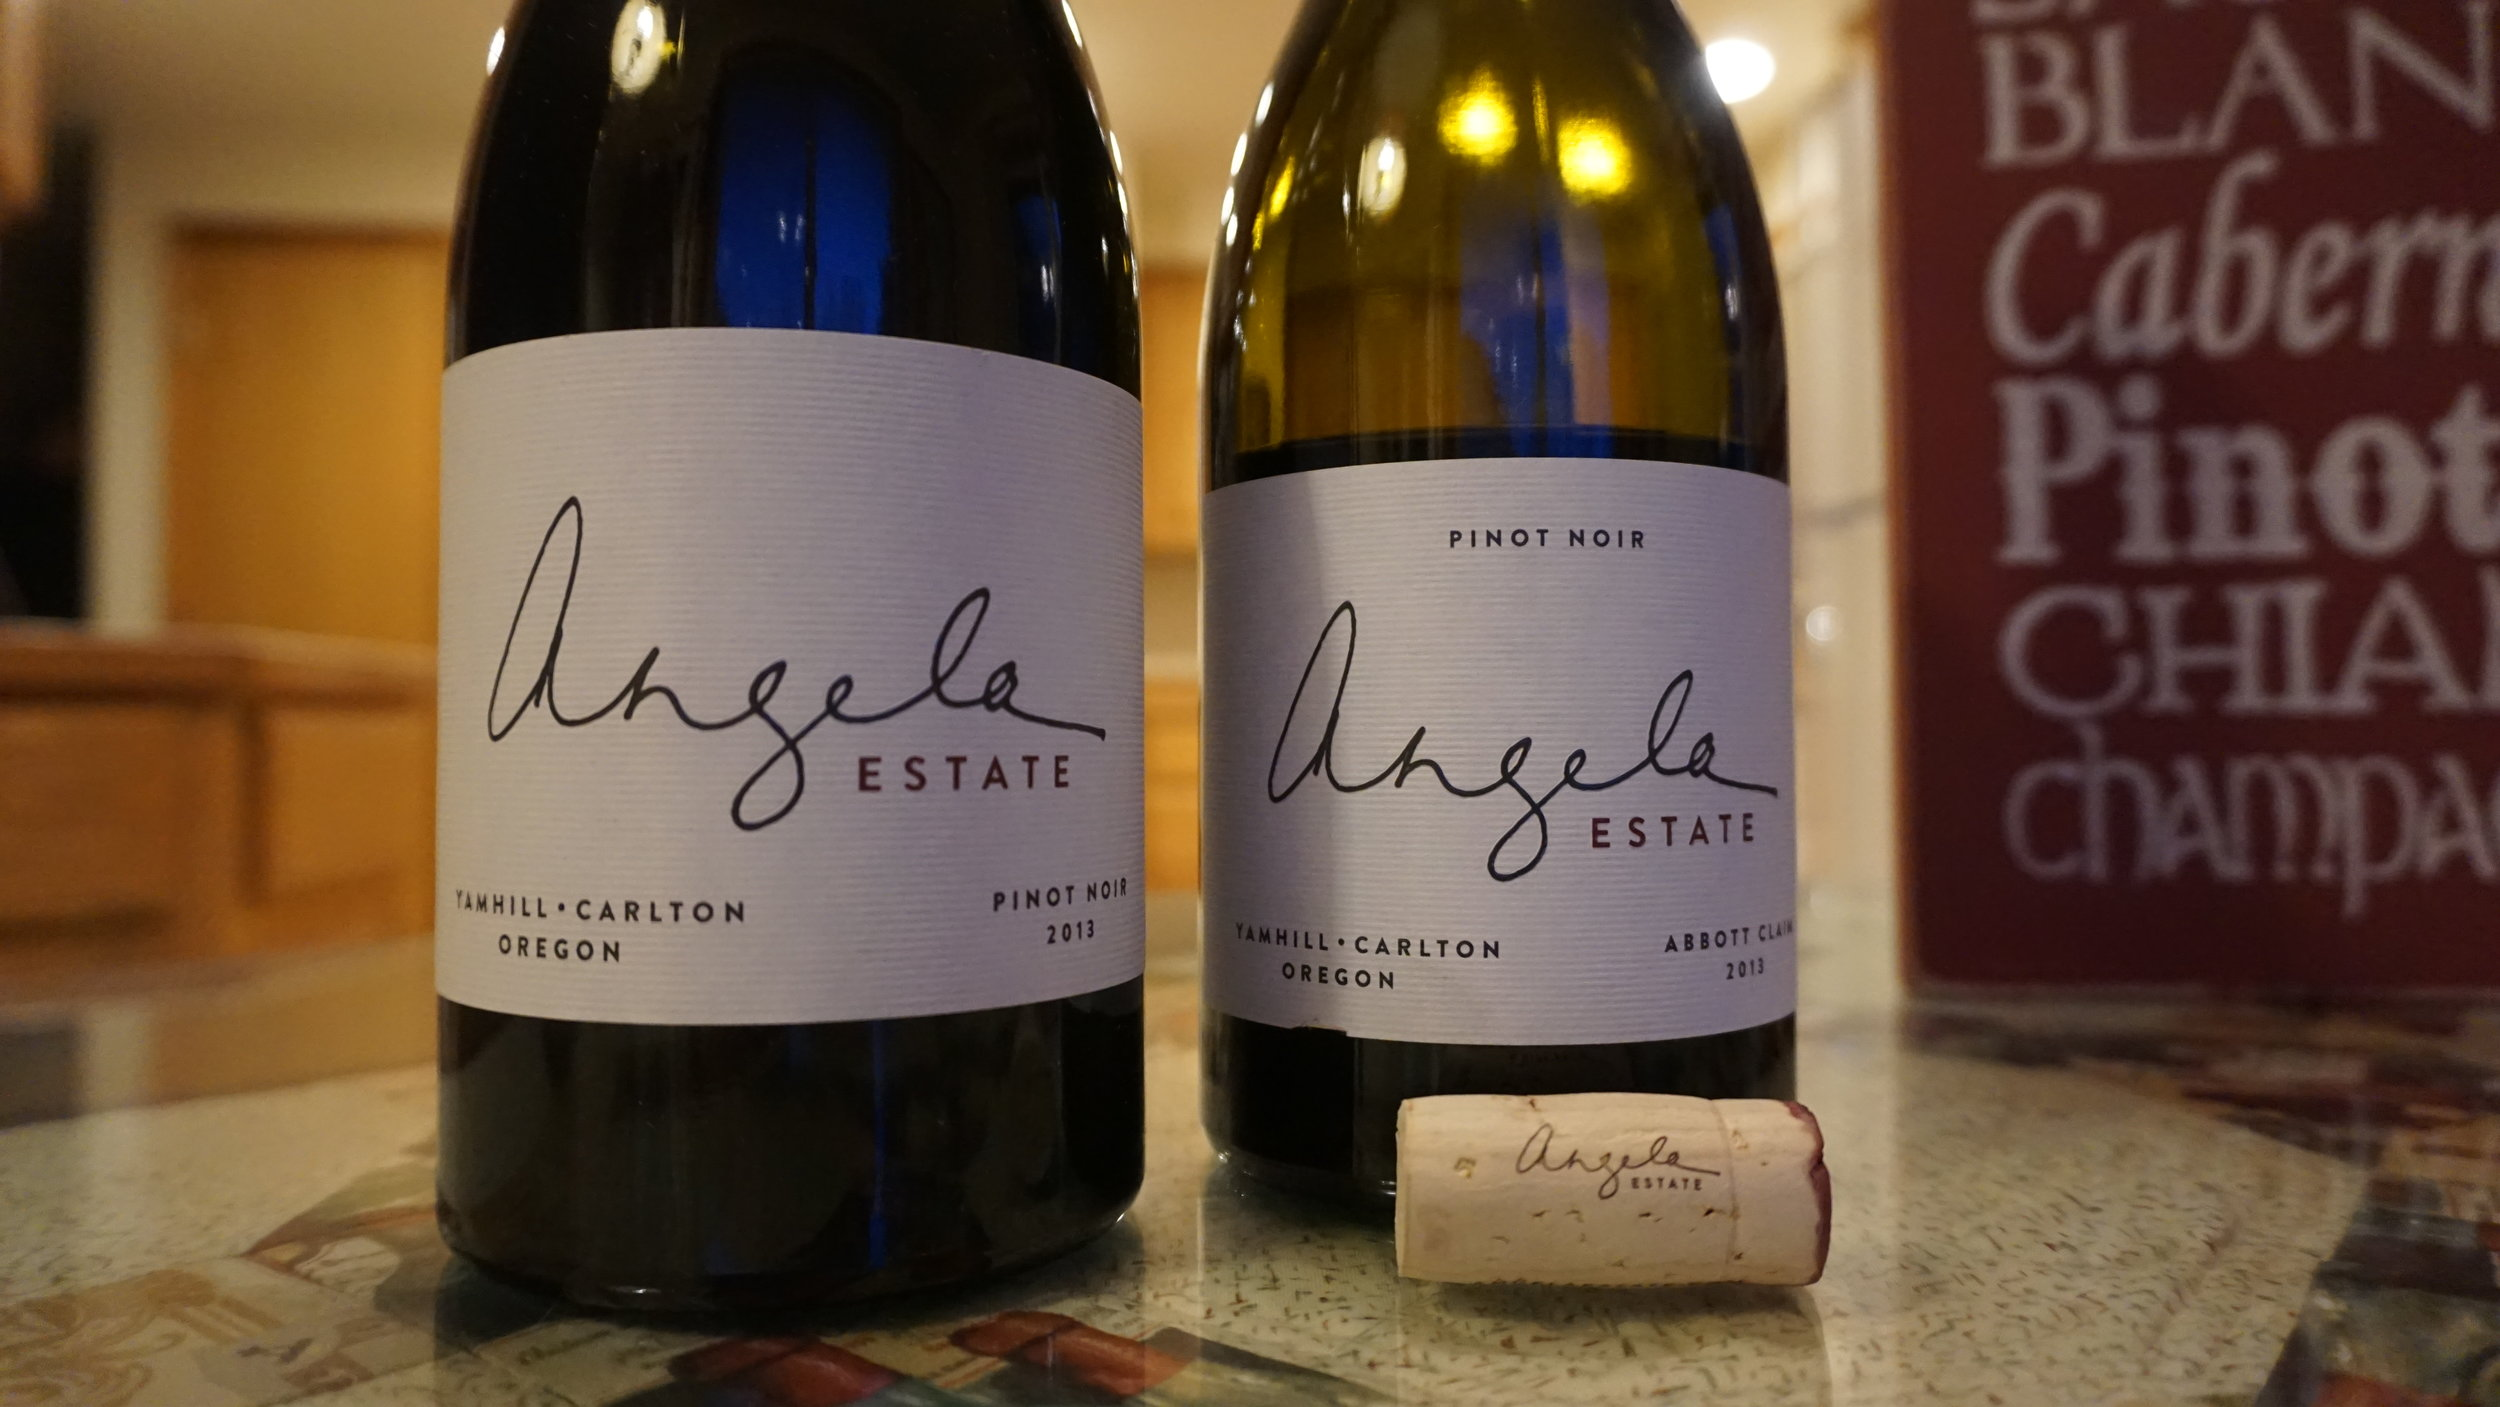 """The 2013 vintage of Angela Estate """"Abbot Claim"""" and Pinot Noir are elegant representations of why Willamette Valley pinot noir has gained international recognition. Viki Eierdam"""